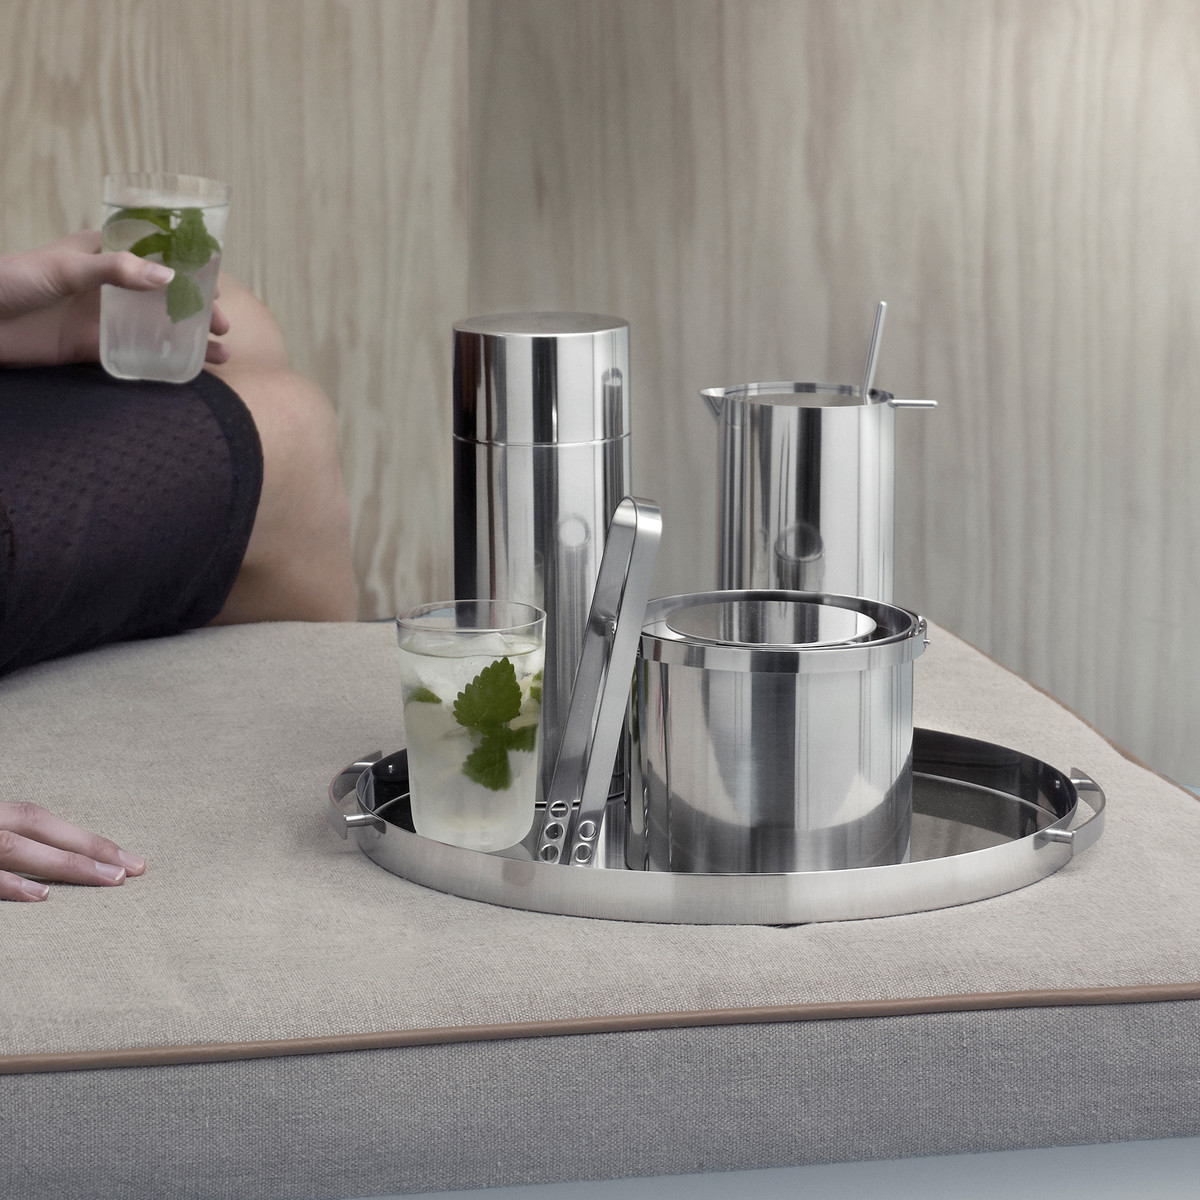 Stelton - Cylinda Cocktail Shaker, Cocktail Shaker with Spoon, ice Bucket, ice tongs and serving tray